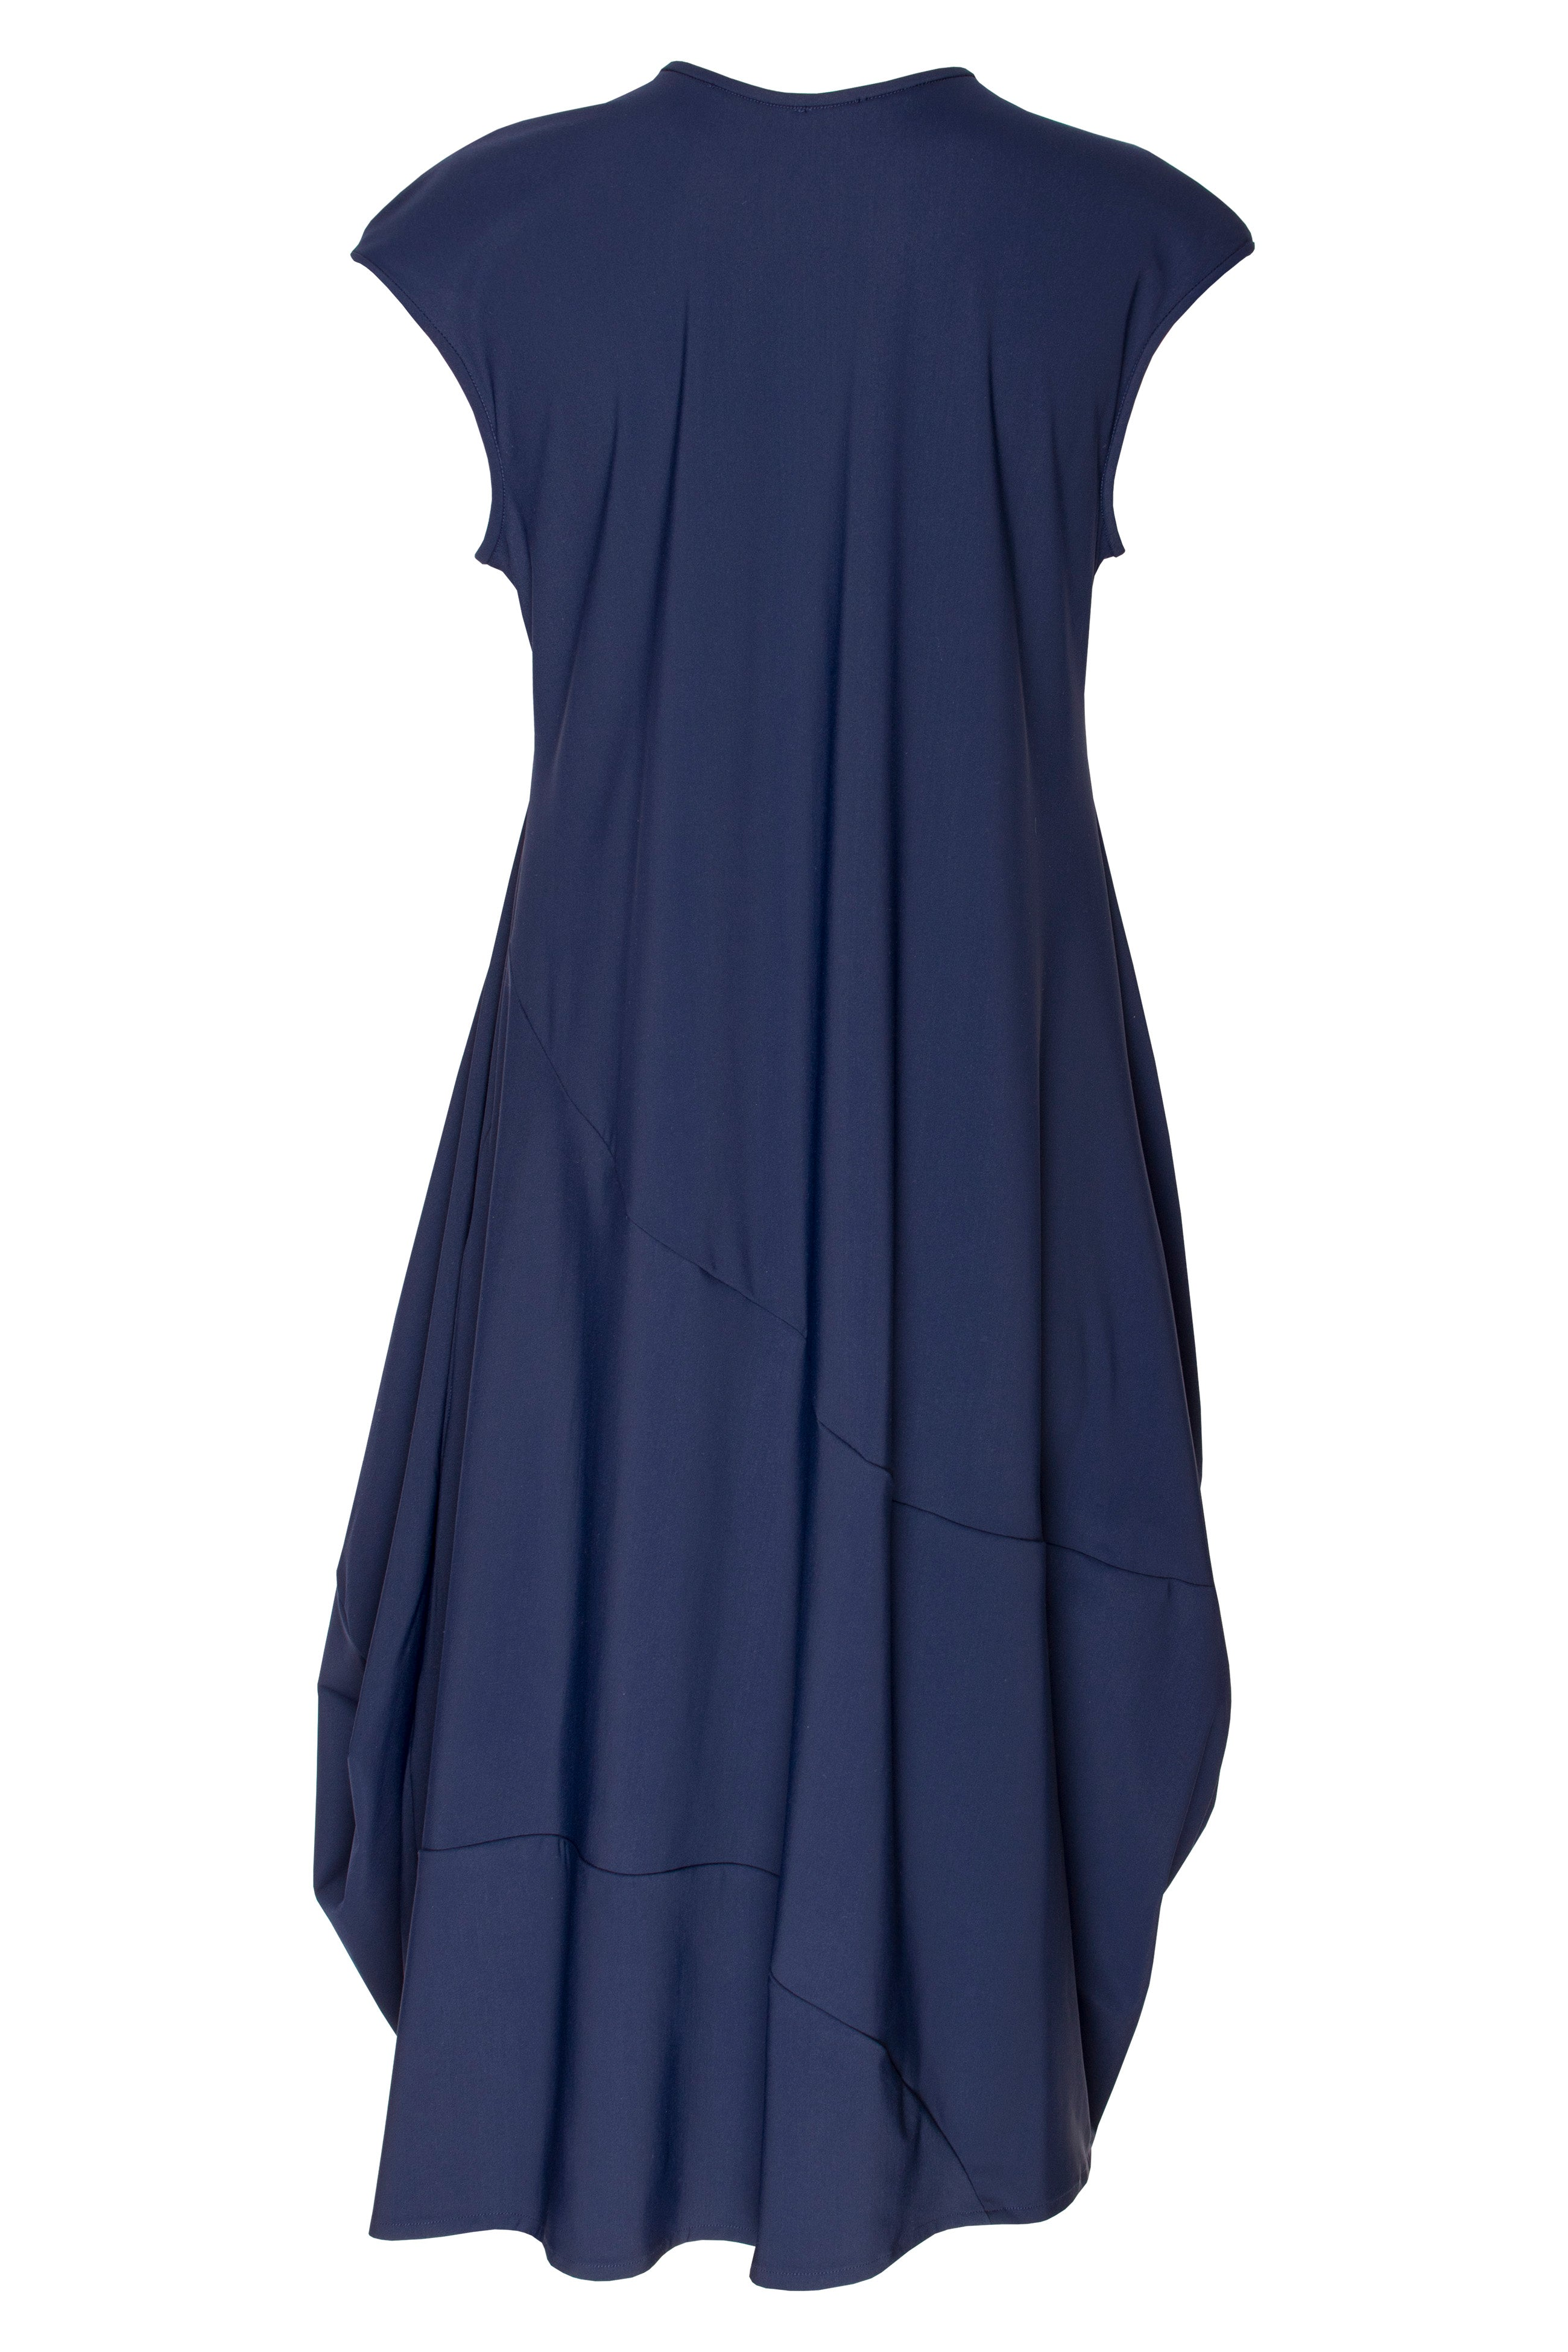 Indigo Jersey Tucked Cap Sleeve Dress 7248